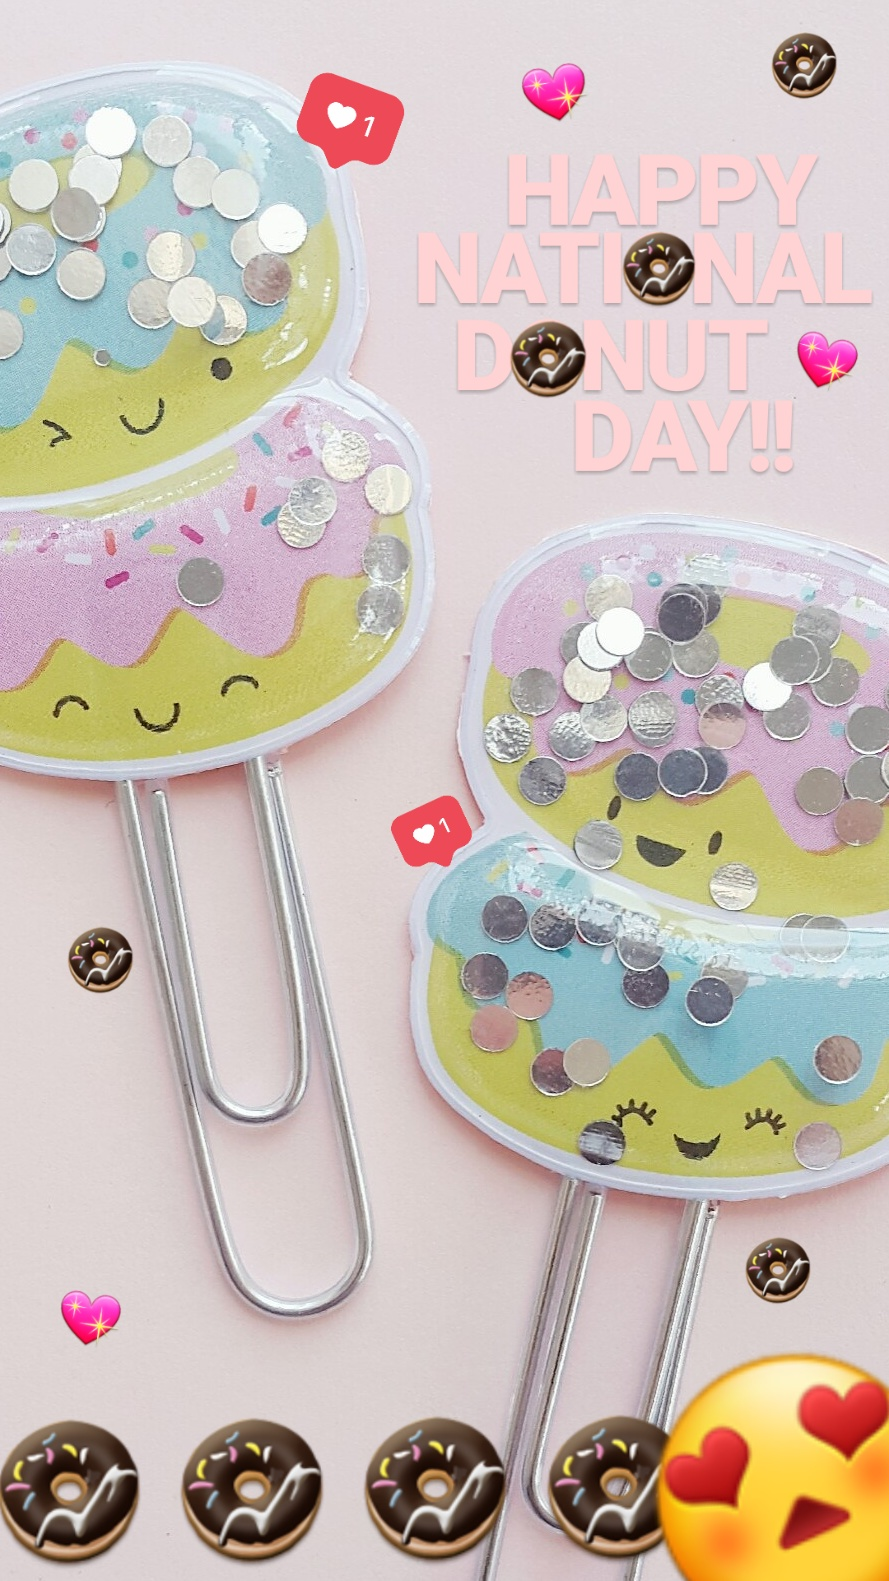 Aren't these just the CUTEST shaker clips! Happy Nationa Donut Day! 🍩 #planner #planneraccessories #plannerclip #plannerclips #shaker #shakers #shakerclip #shakerclips #paperclip #paperclipDIYs #paperclipcraft #cute #kawaii #donut #donuts #doughnuts #nationaldonutday #nationaldoughnutday #bujo #bulletjournal #happyplanner #plannerideas #plannerinspo #eclp #erincondren #sprinkles #pink #pastel